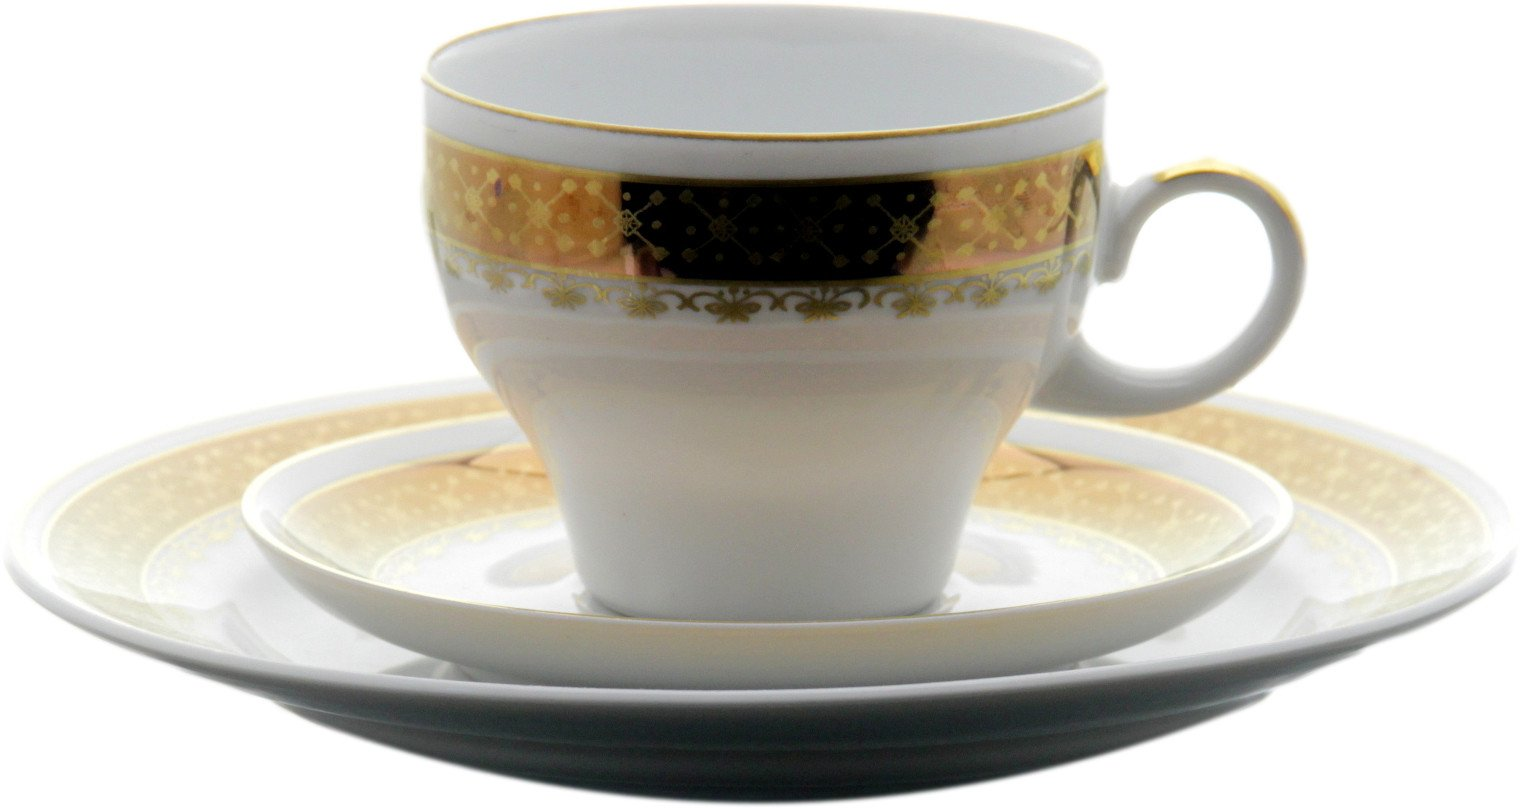 Breakfast Set, SPE W8, Germany, 1980s